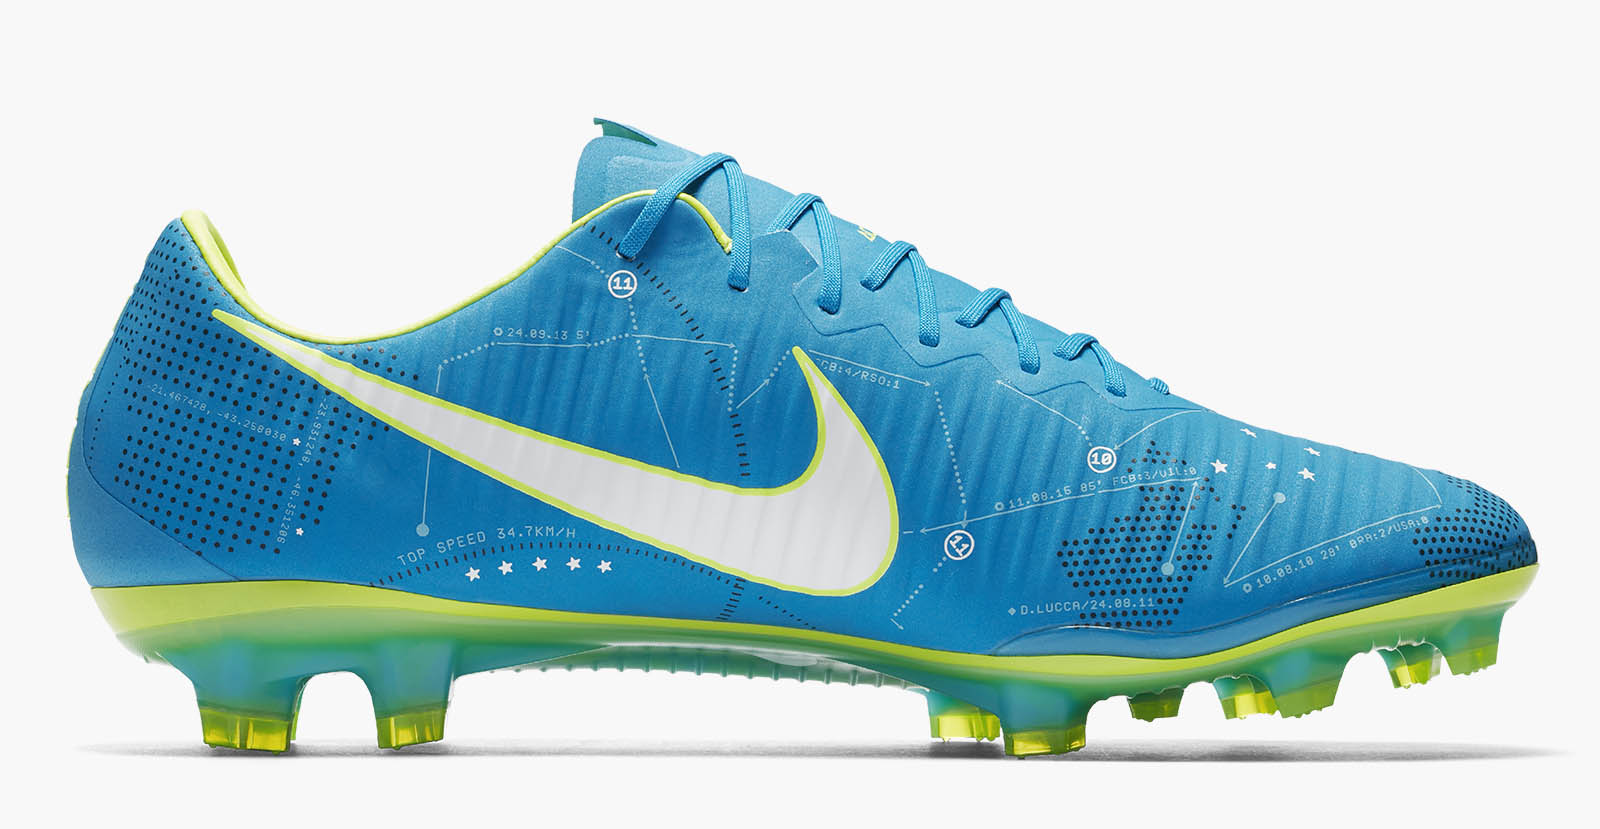 Nike Mercurial Vapor XI Neymar Boots. This is the new Nike Mercurial Vapor  11 Neymar 2017 soccer cleat. +2